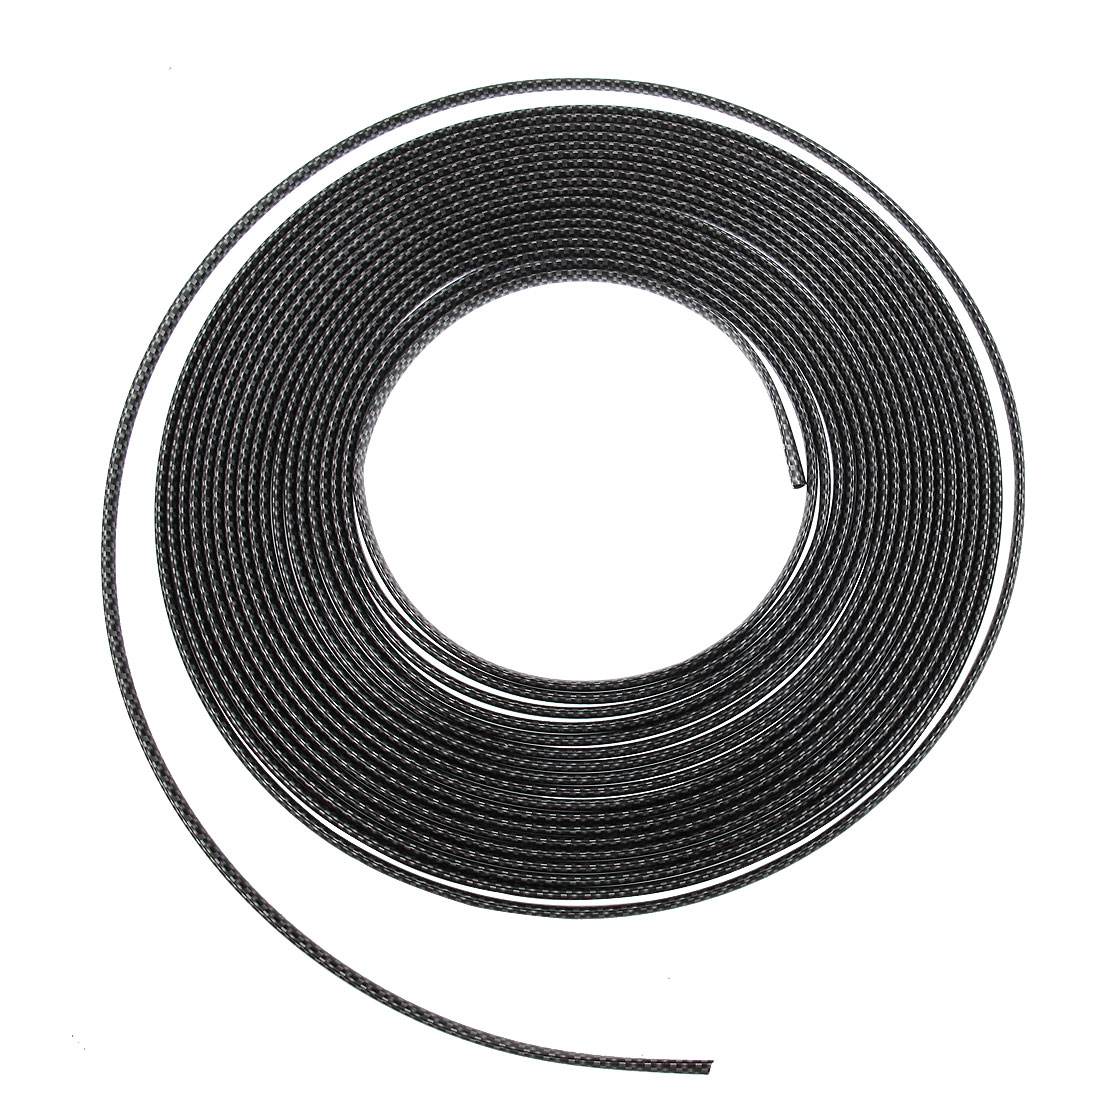 Auto Vehicle Car Black White DIY Moulding Trim Strip Decor 15M Length